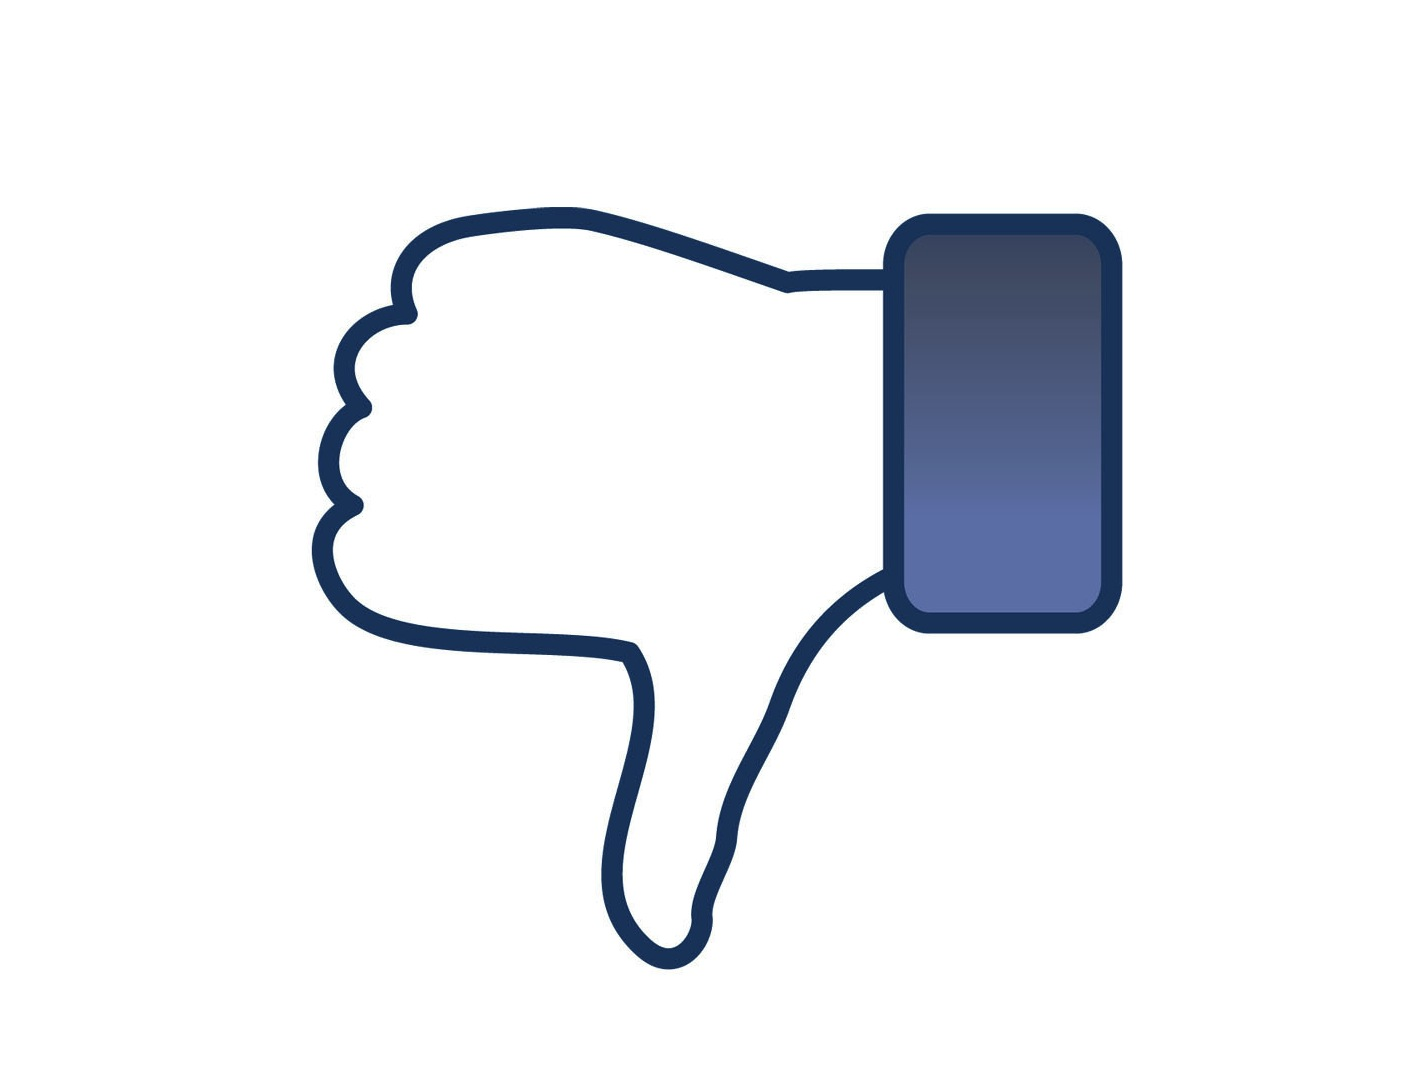 Thumb down icon clipart jpg free library Thumbs Down Clipart | Free download best Thumbs Down Clipart on ... jpg free library